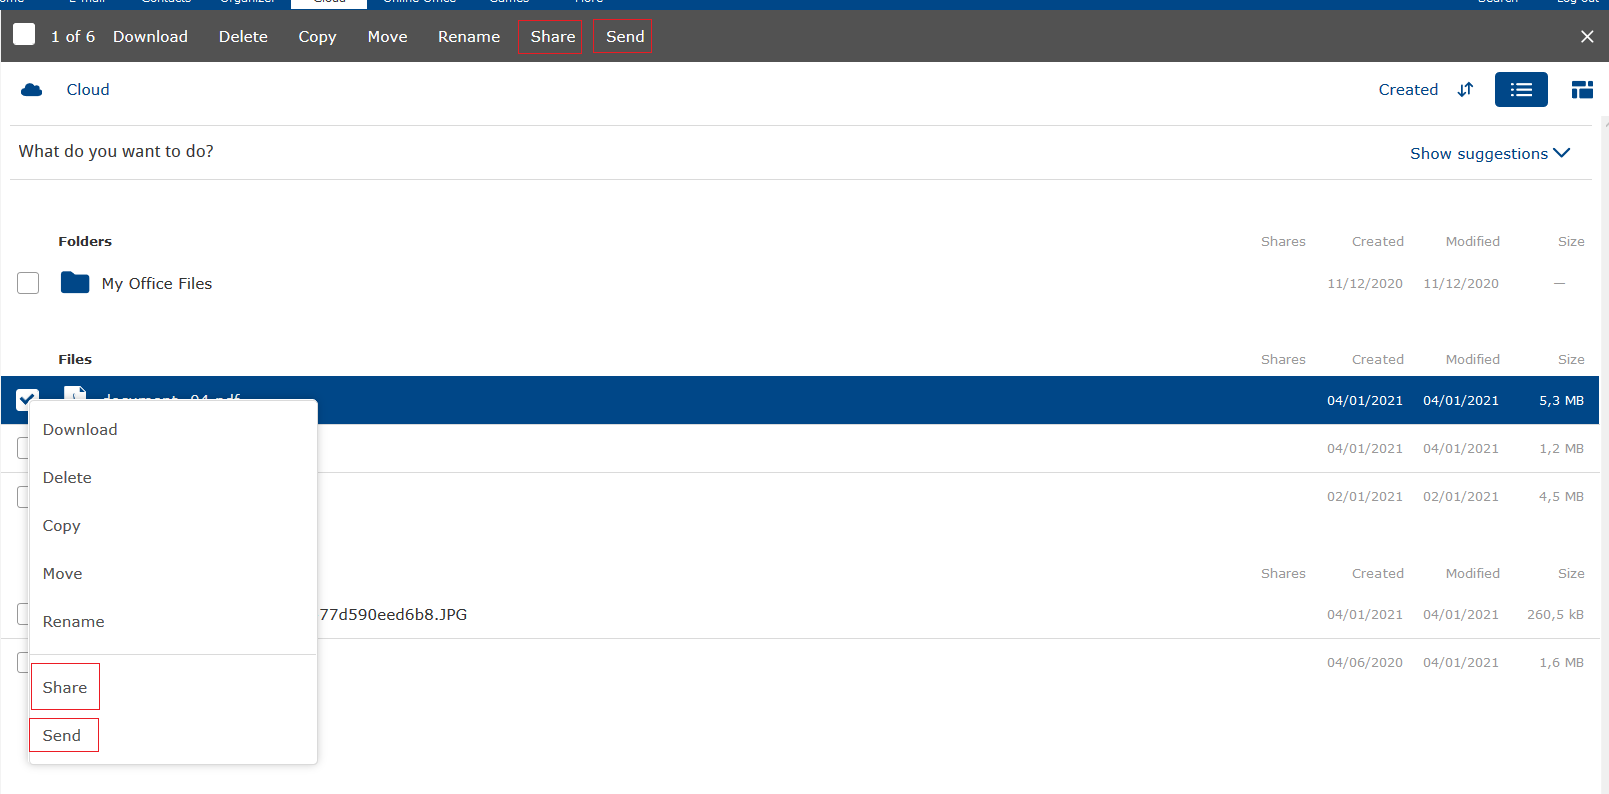 Screenshot of mail.com Cloud showing how to share files as email attachments or send a file-sharing link